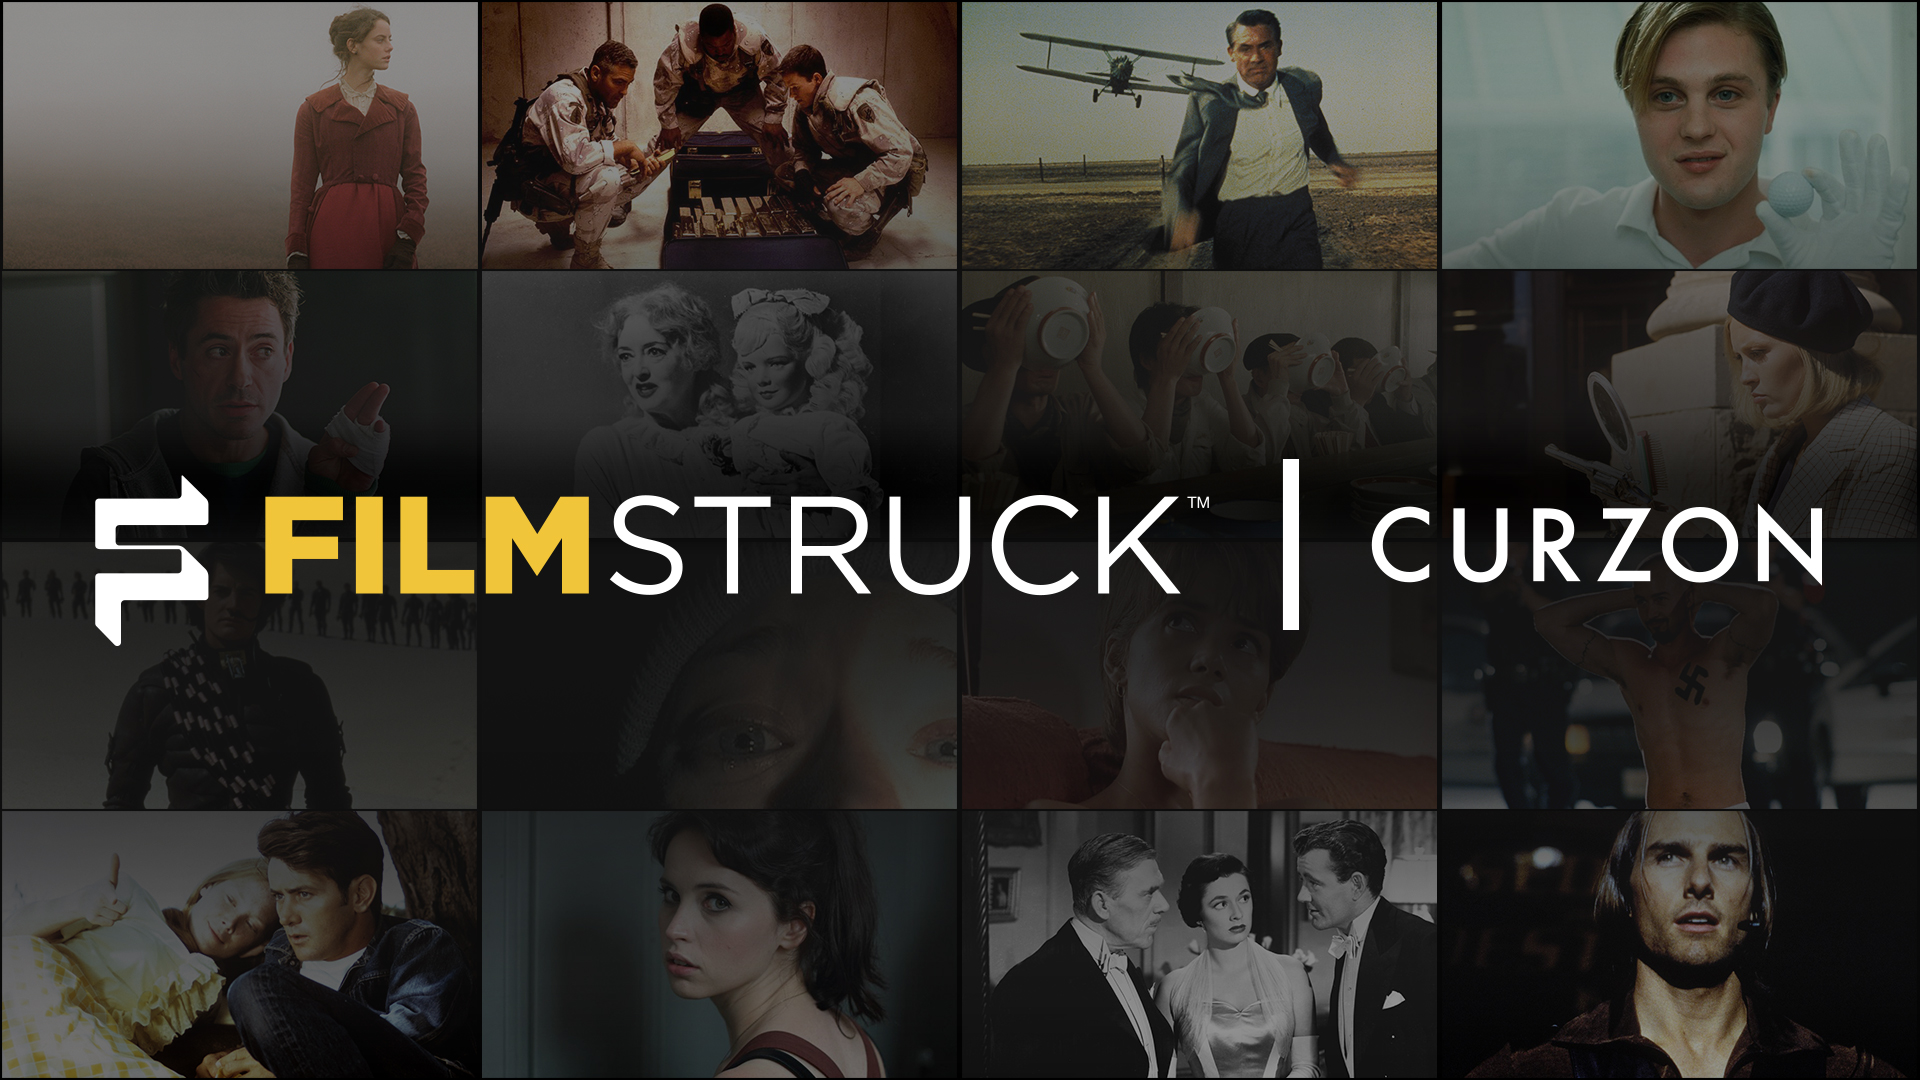 FilmStruck Lead